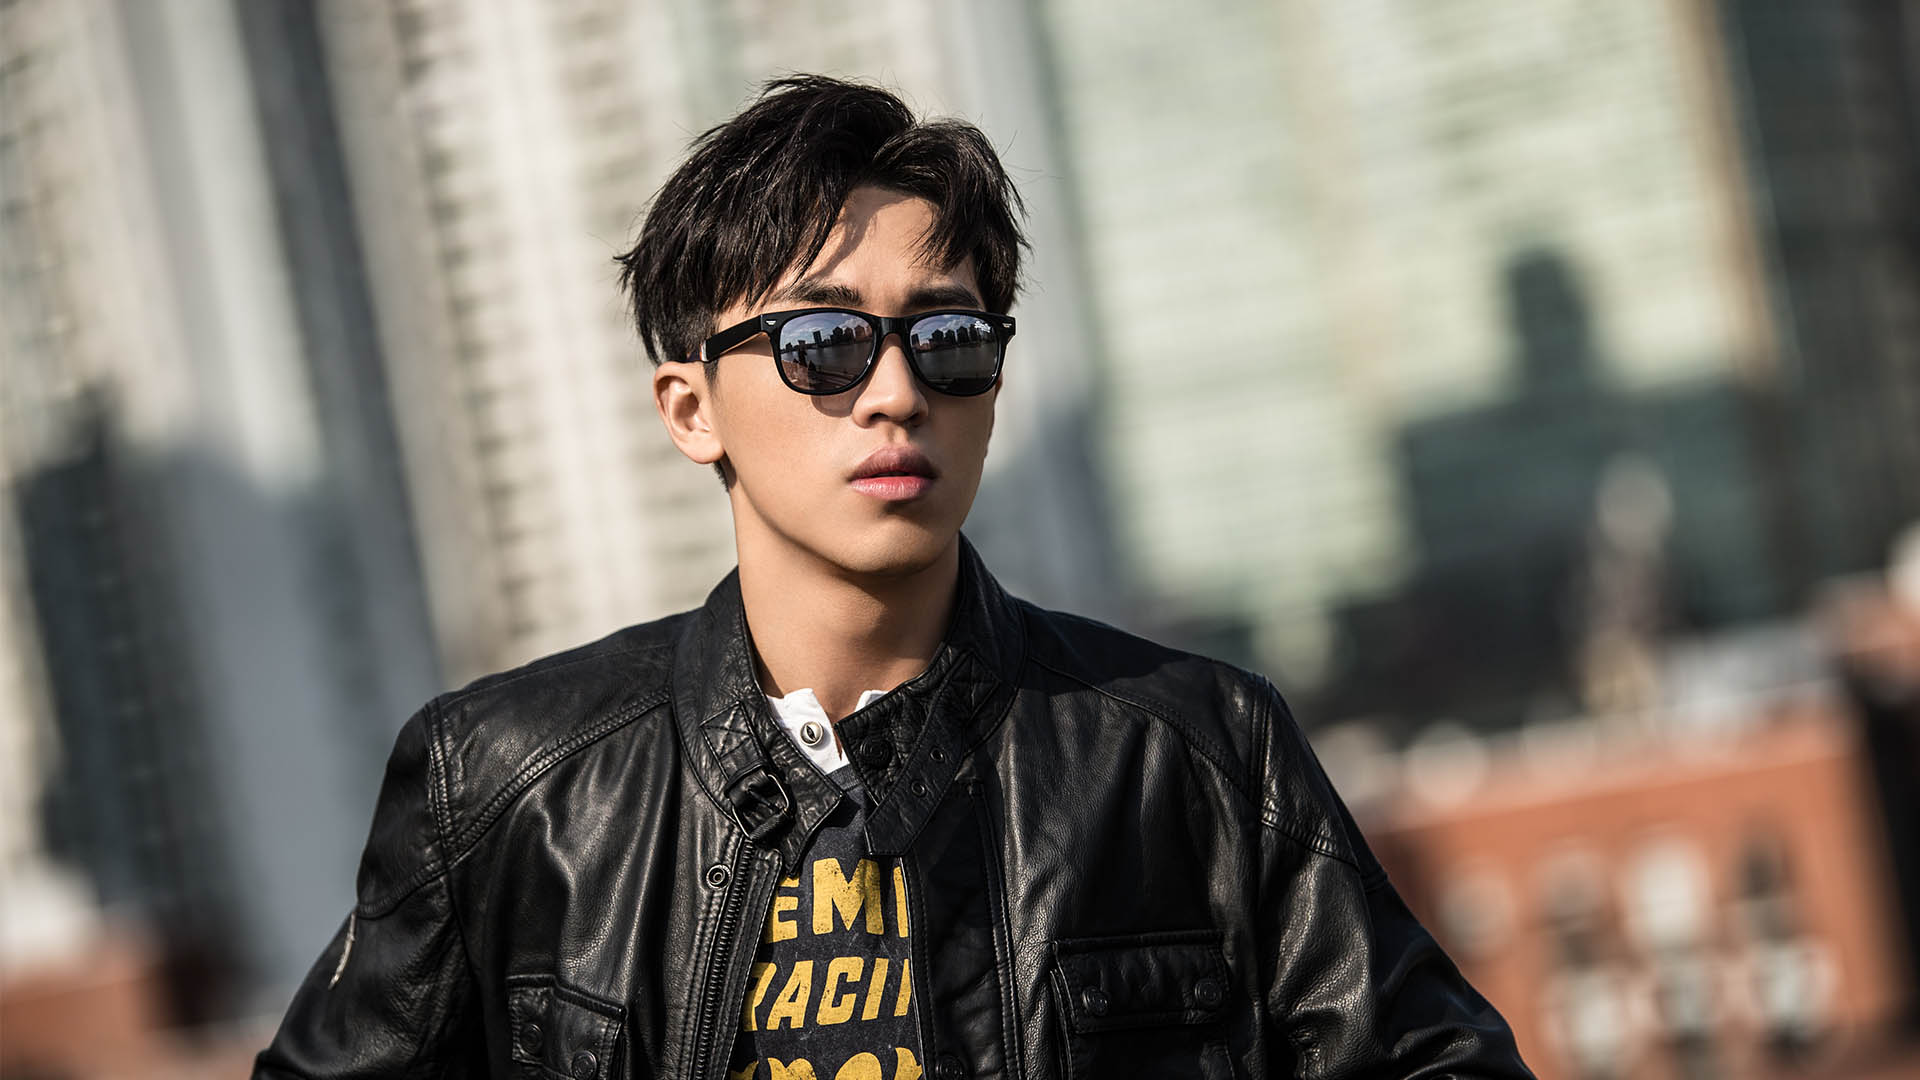 male-leather-jacket-sunglasses.jpg